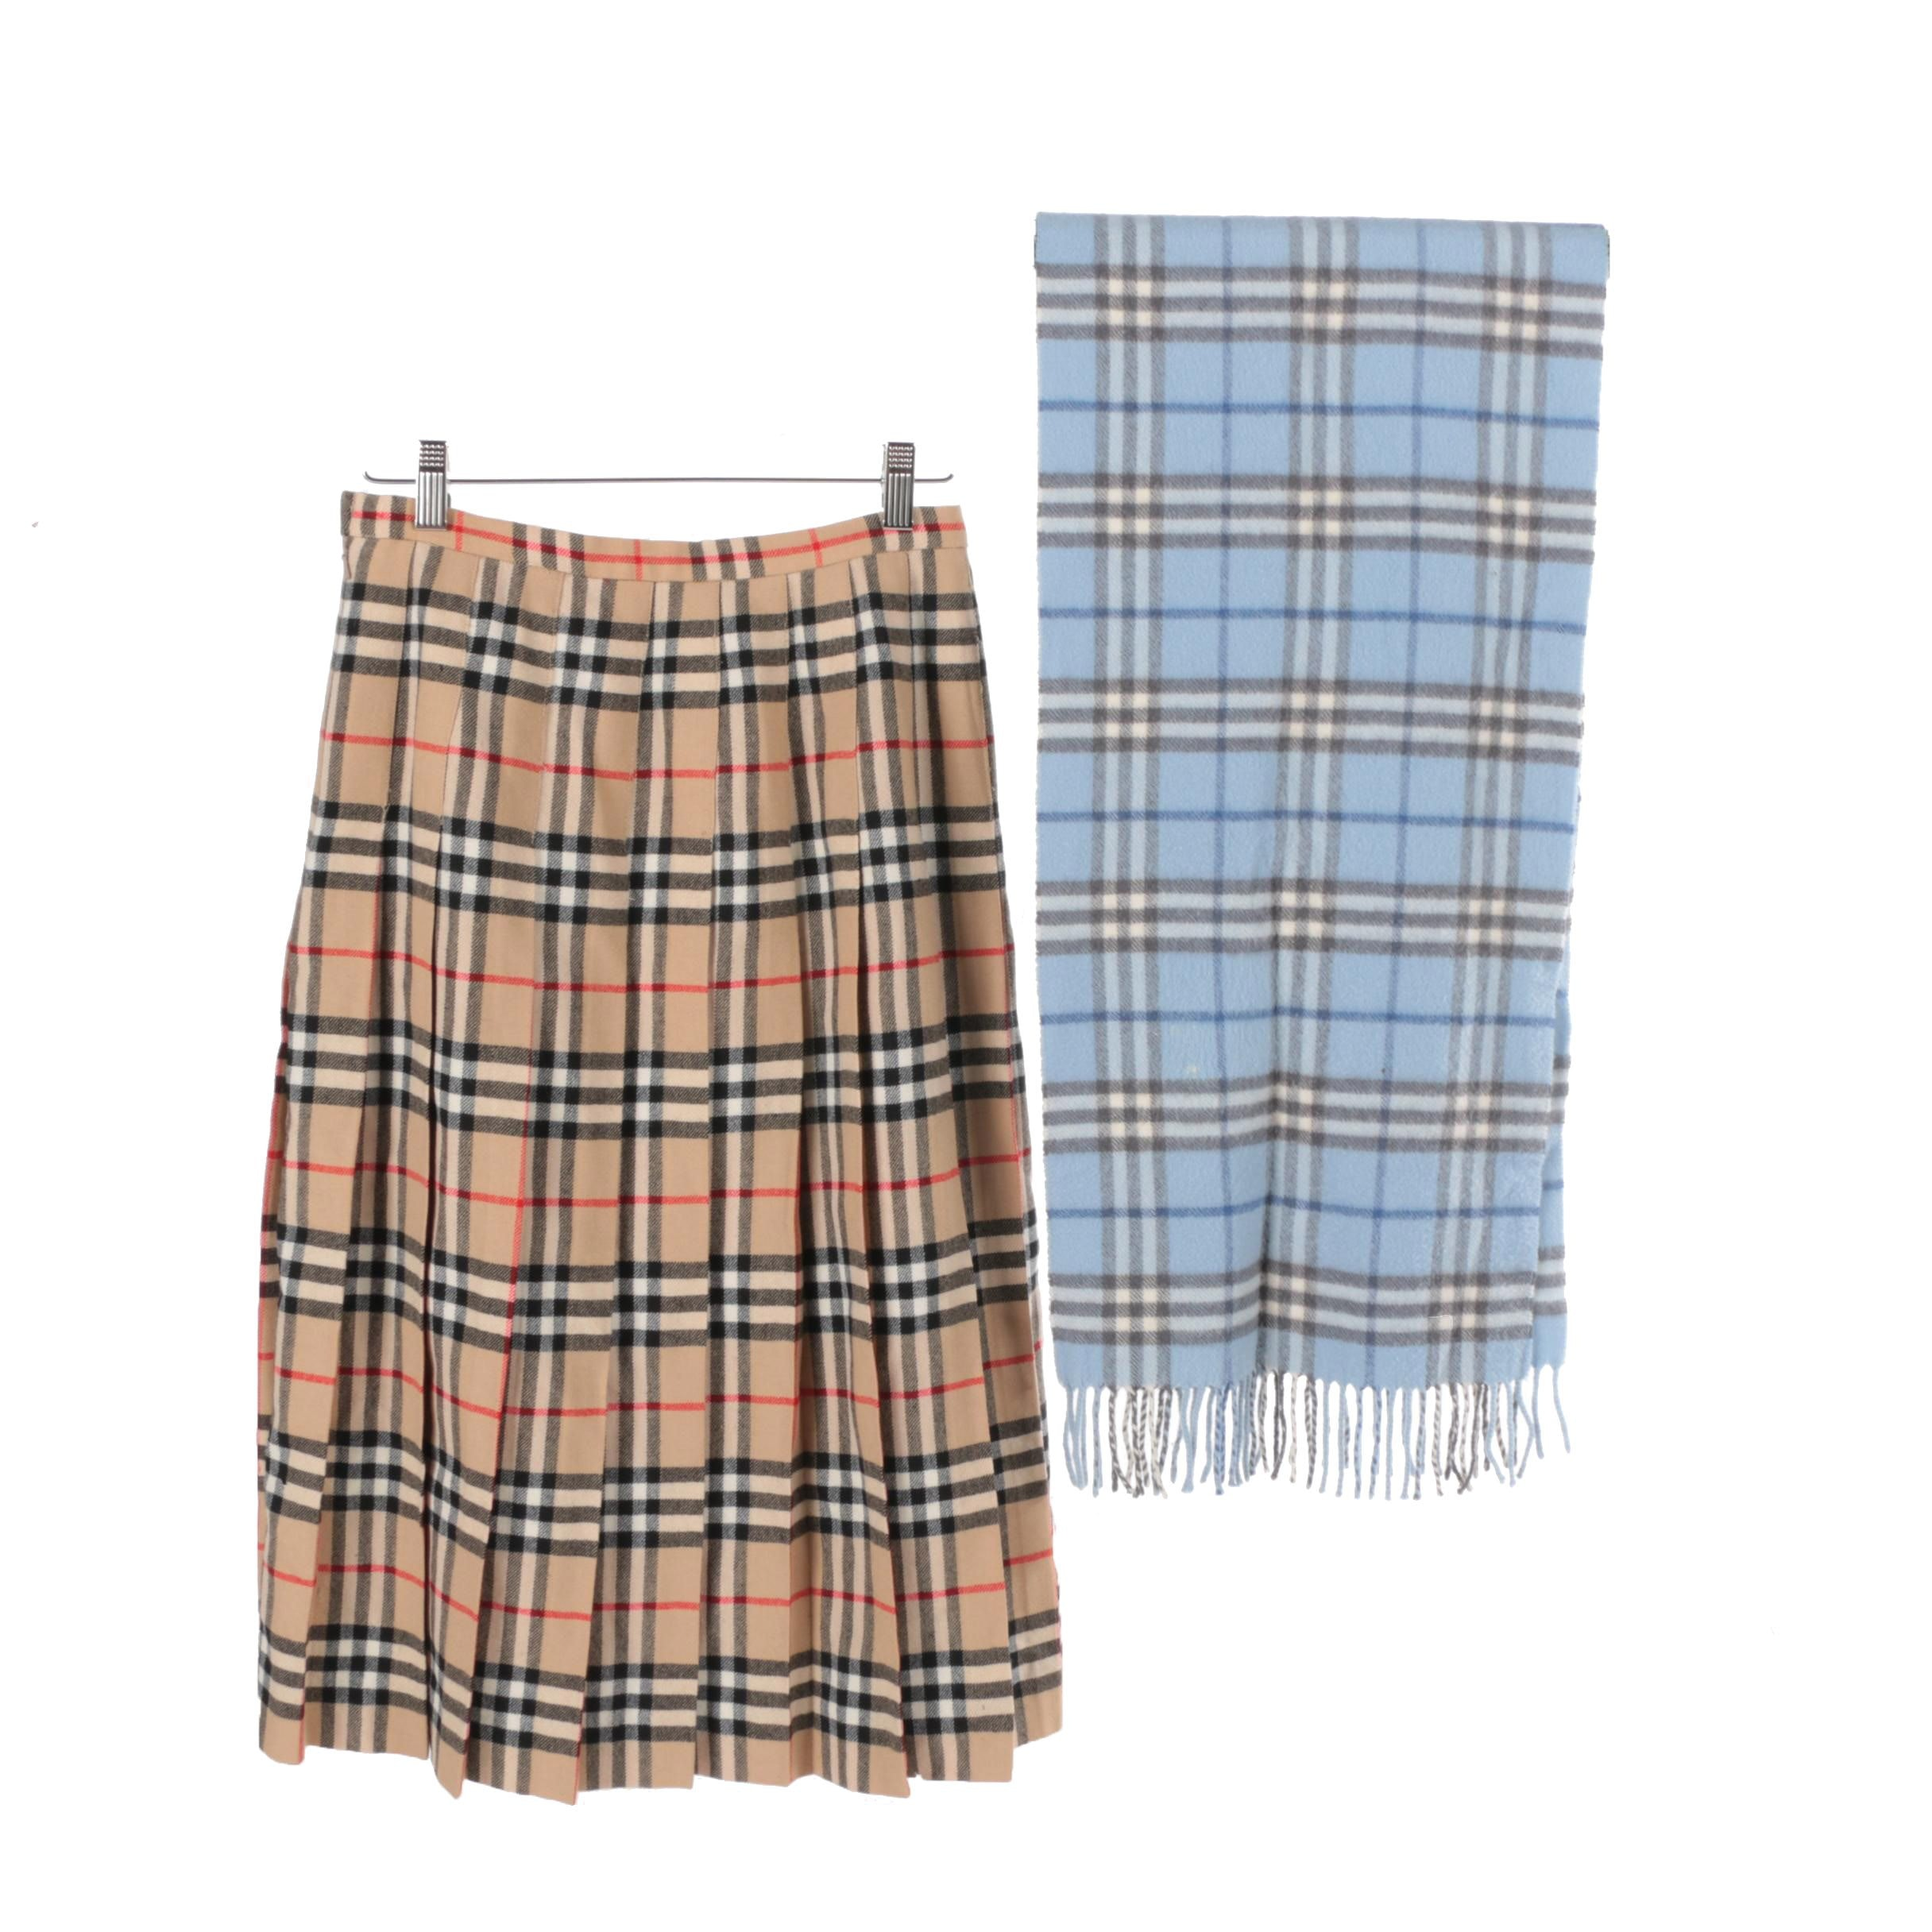 Burberry Cashmere Scarf and Plaid Skirt